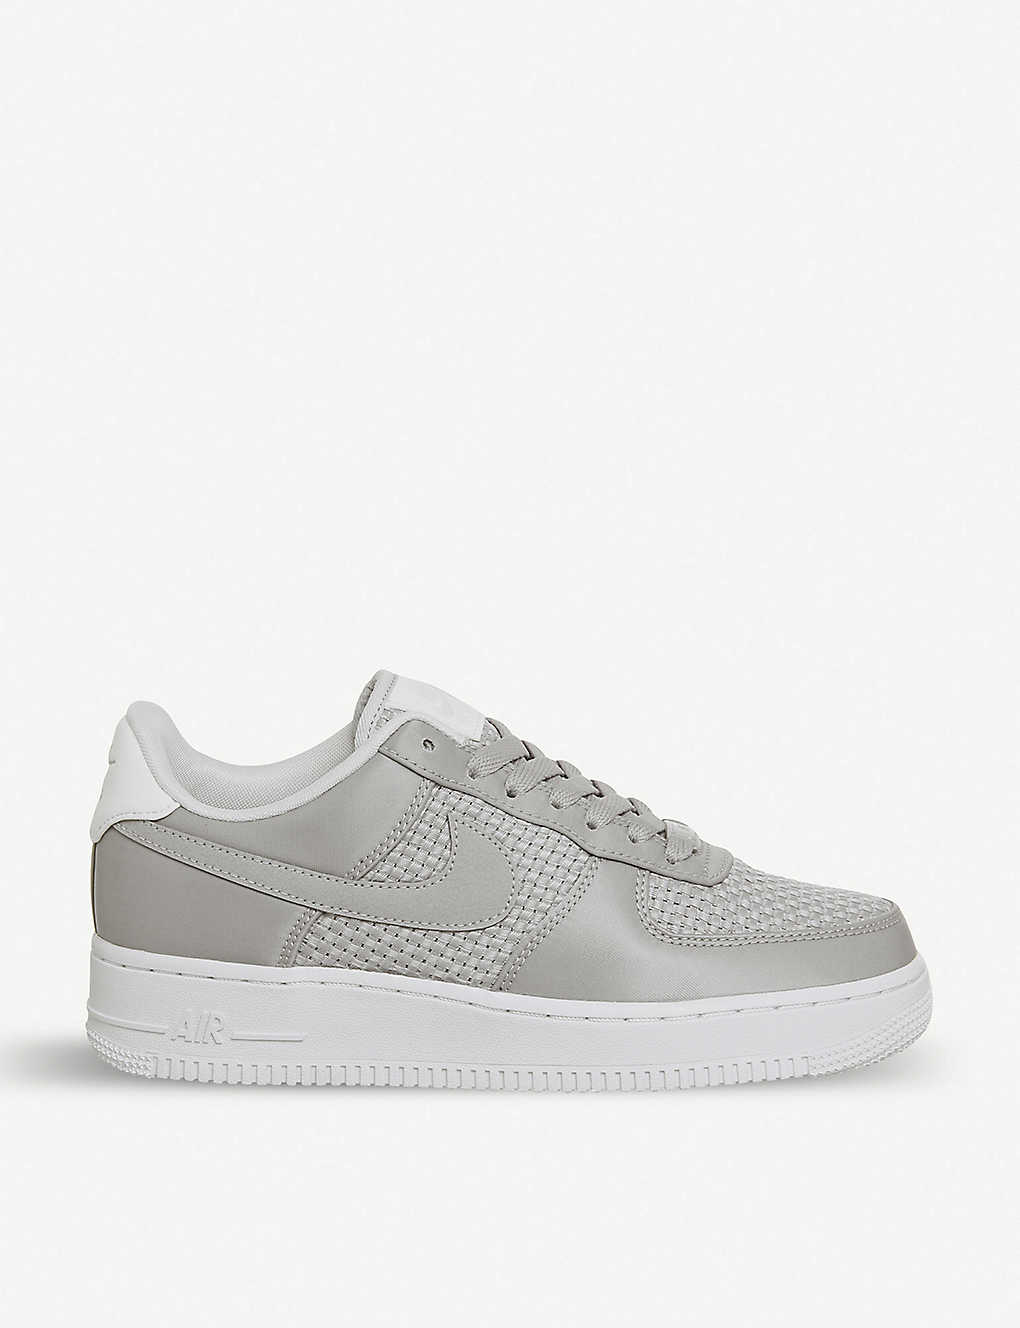 new concept c5394 26f4e NIKE Air Force 1 07 leather trainers